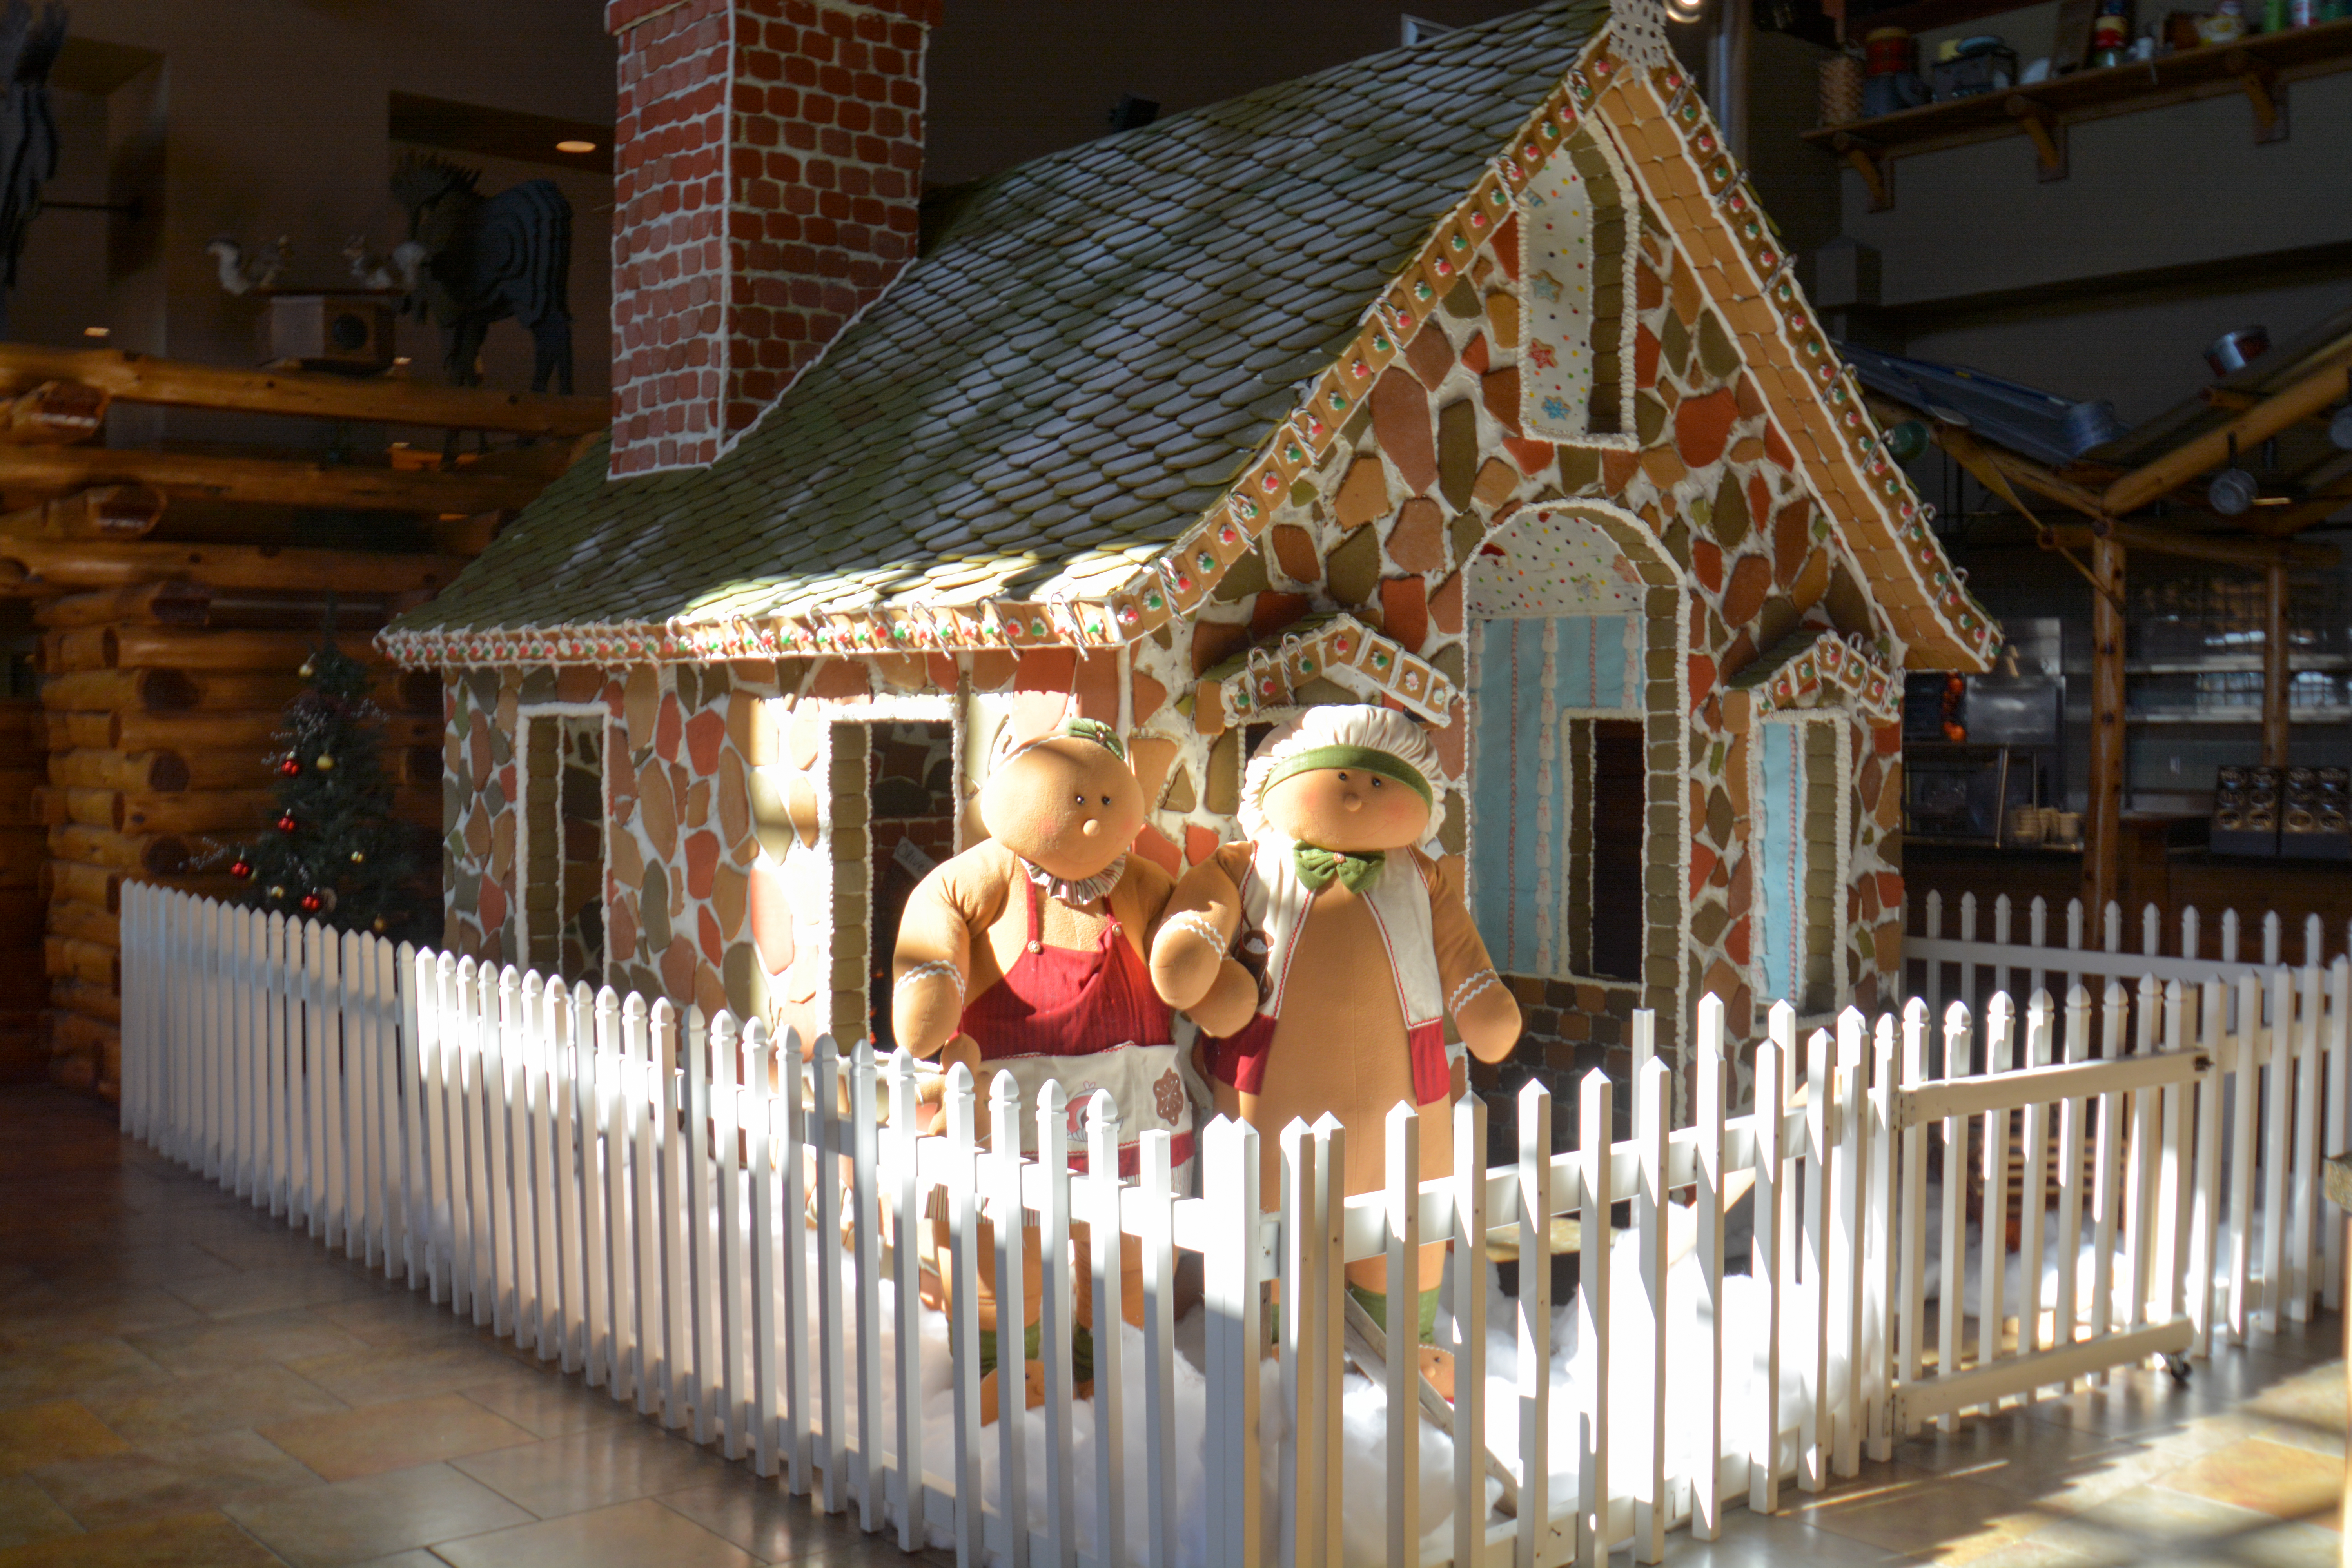 A Look at the Life-Size Gingerbread House at Great Wold Lodge in Grapevine